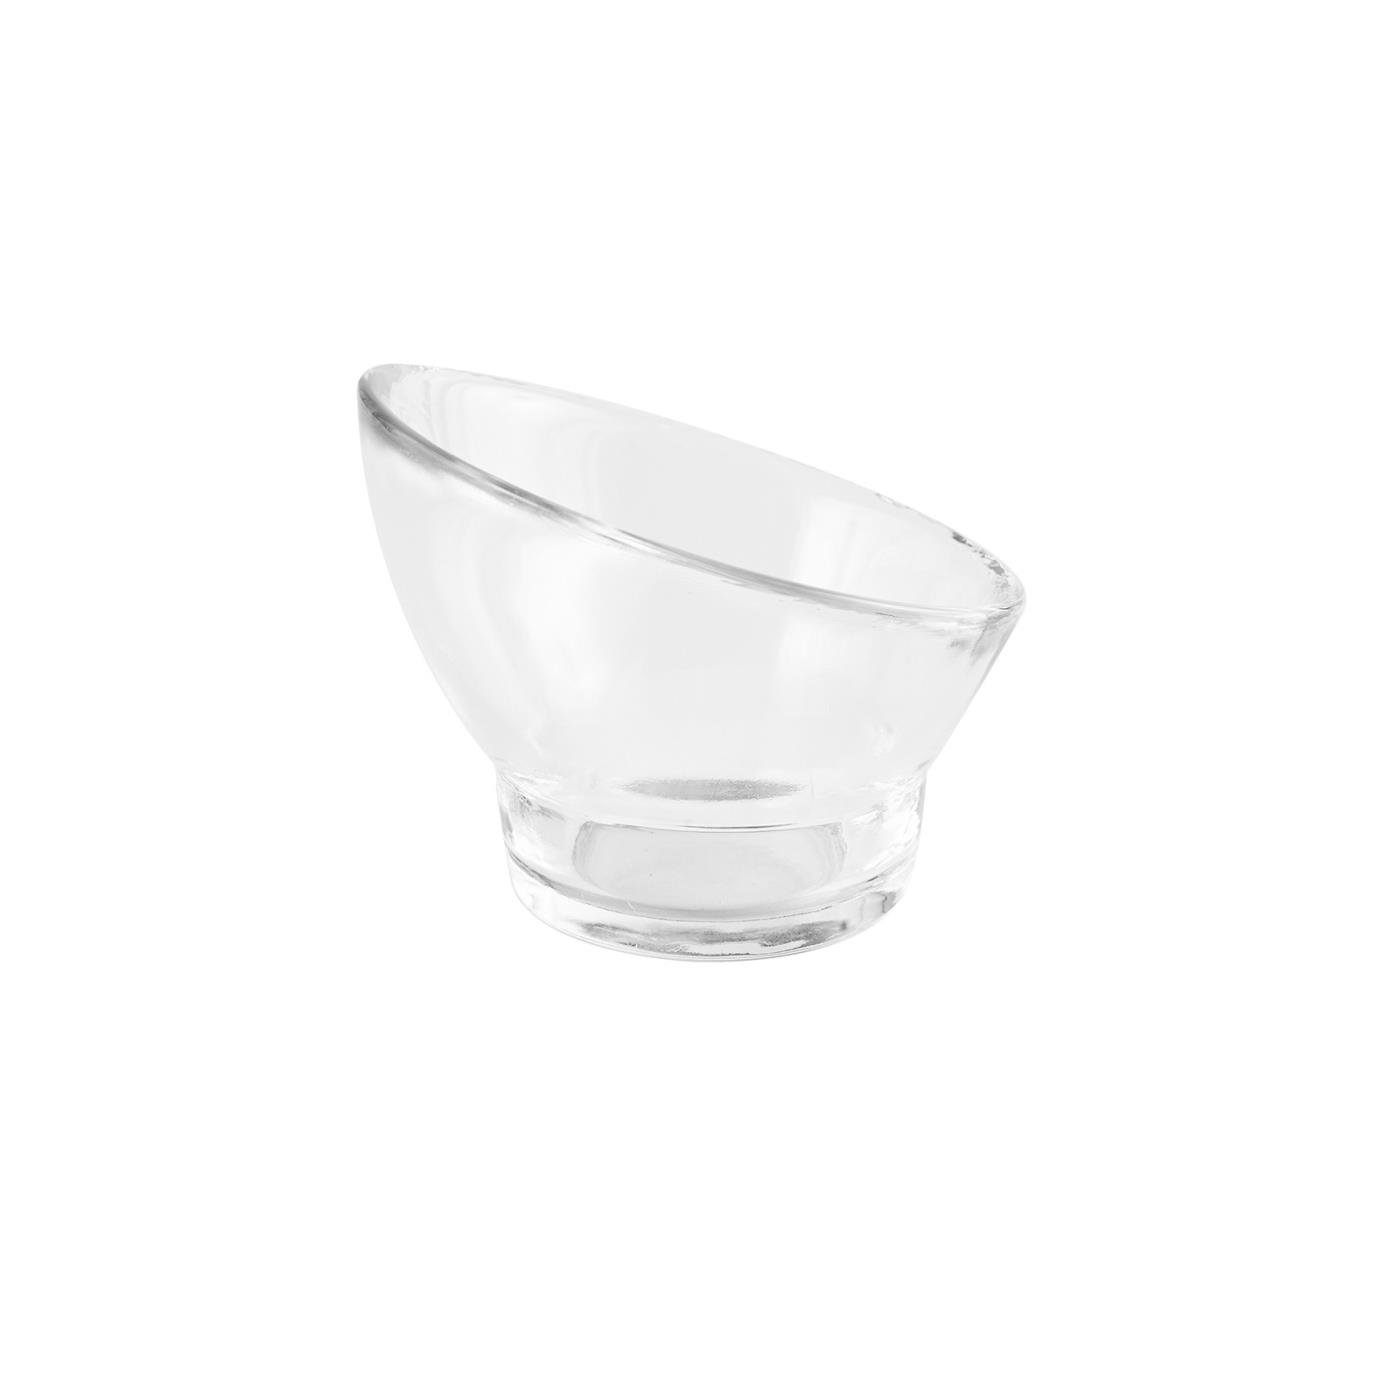 Glass Slanted Bowl - 4